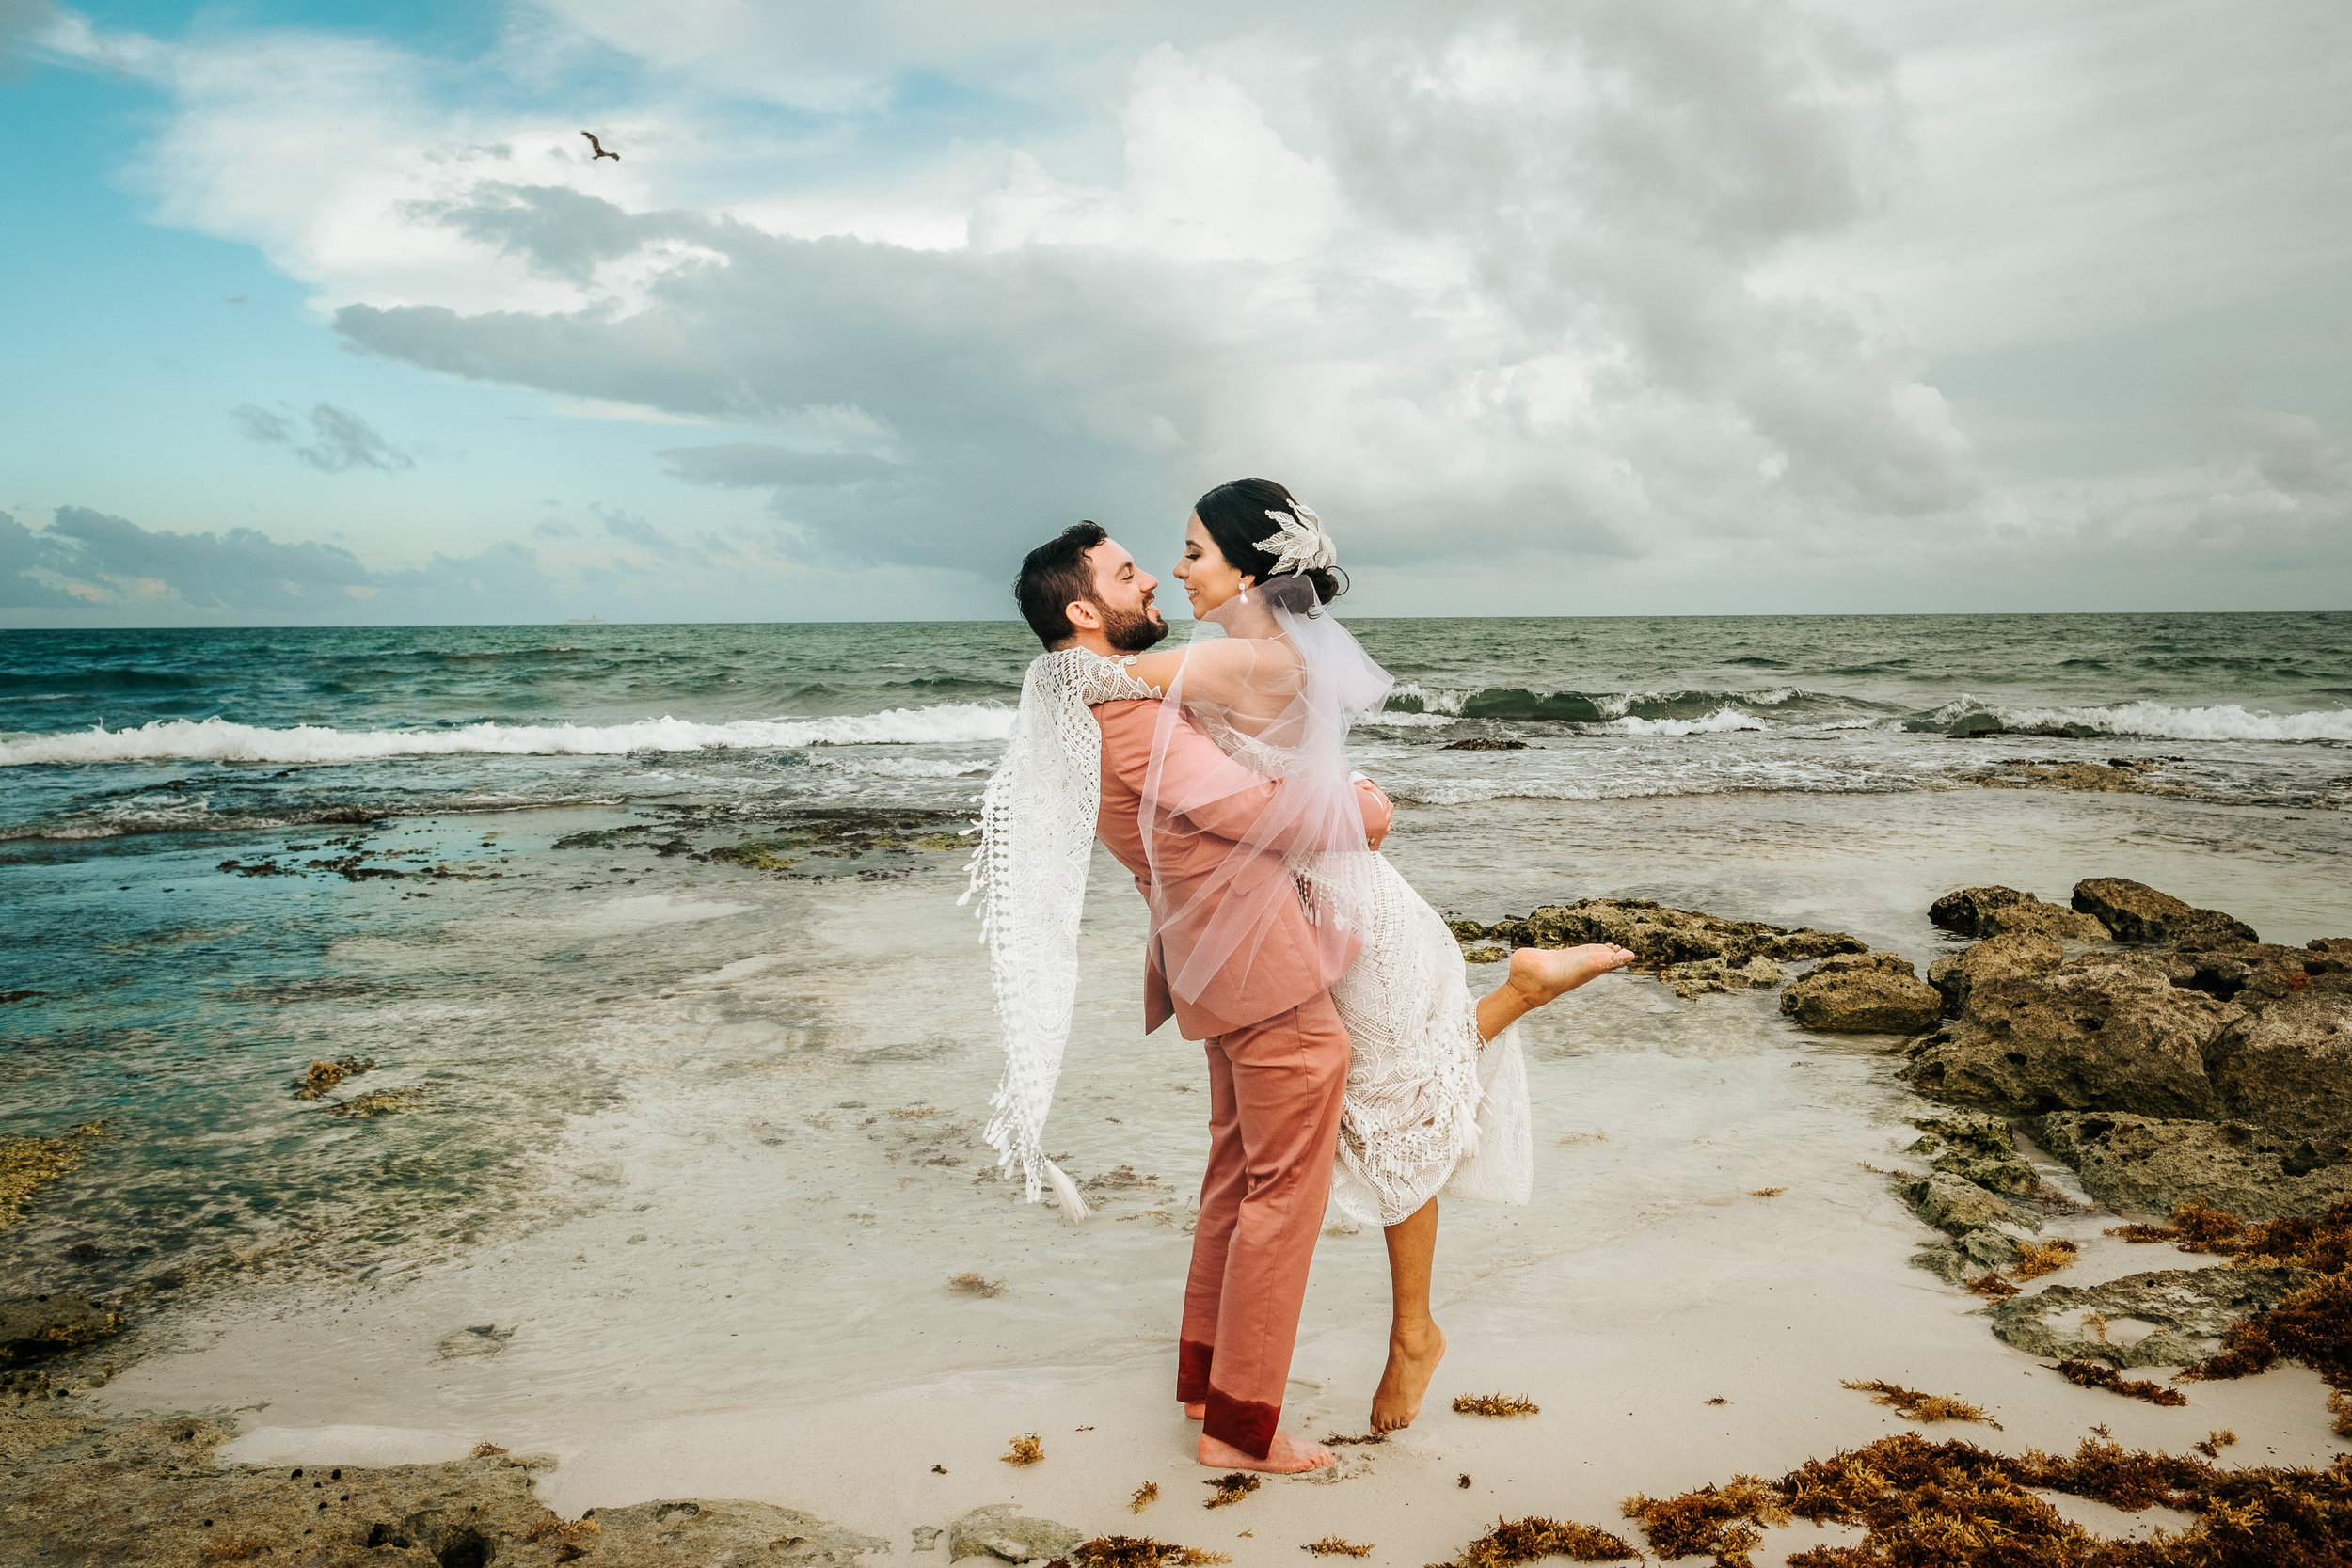 Karla & Logan - Mayan wedding at Playa del Carmen